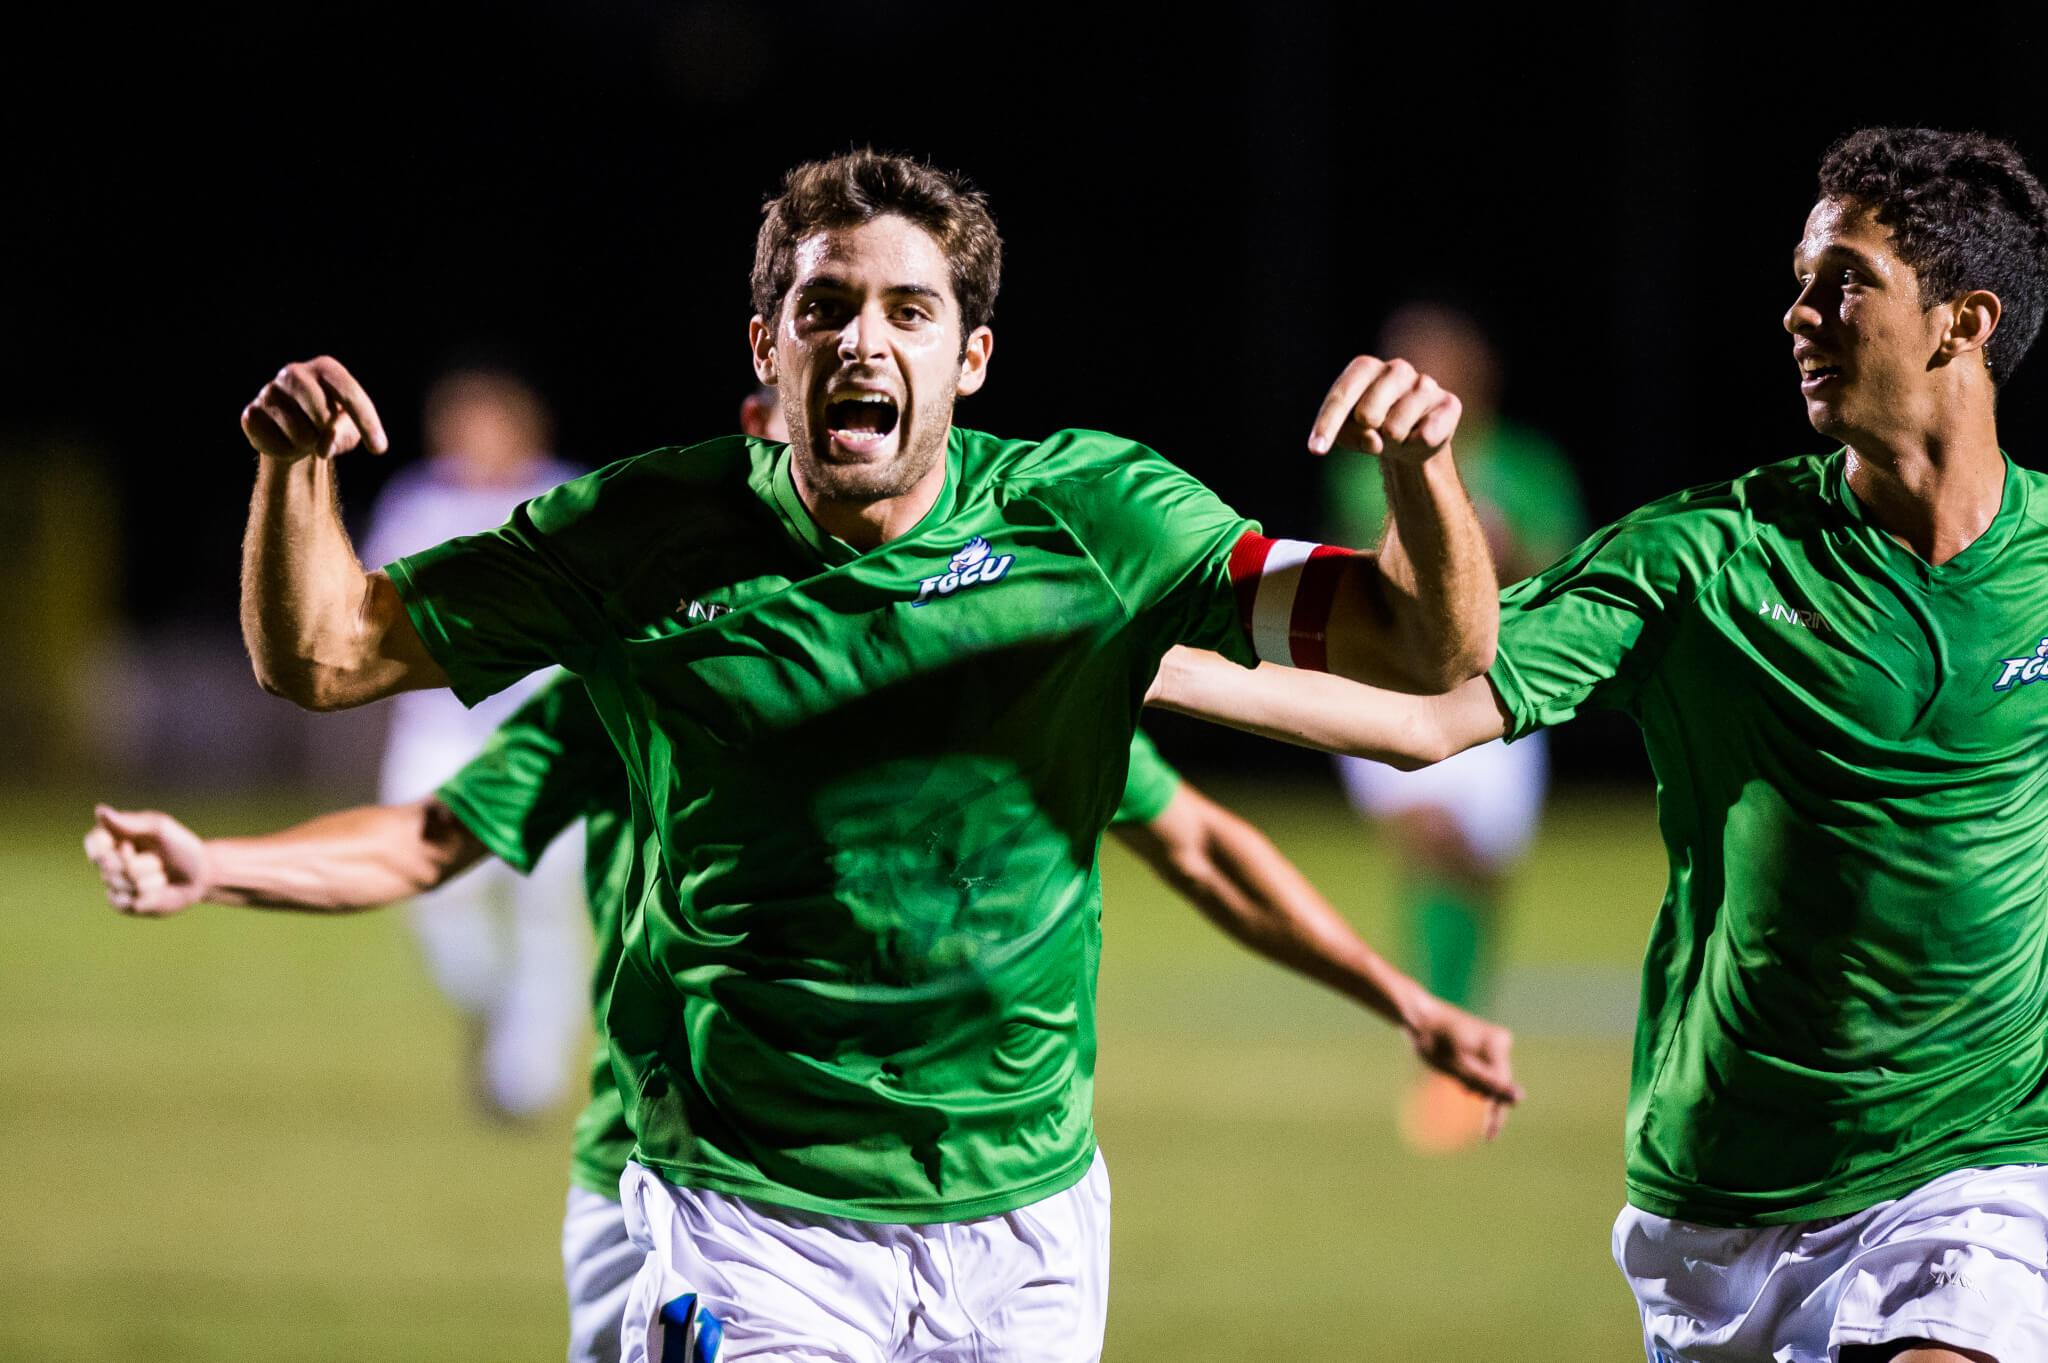 No. 20 FGCU men's soccer to host Jacksonville in the ASUN Men's Soccer Championship final